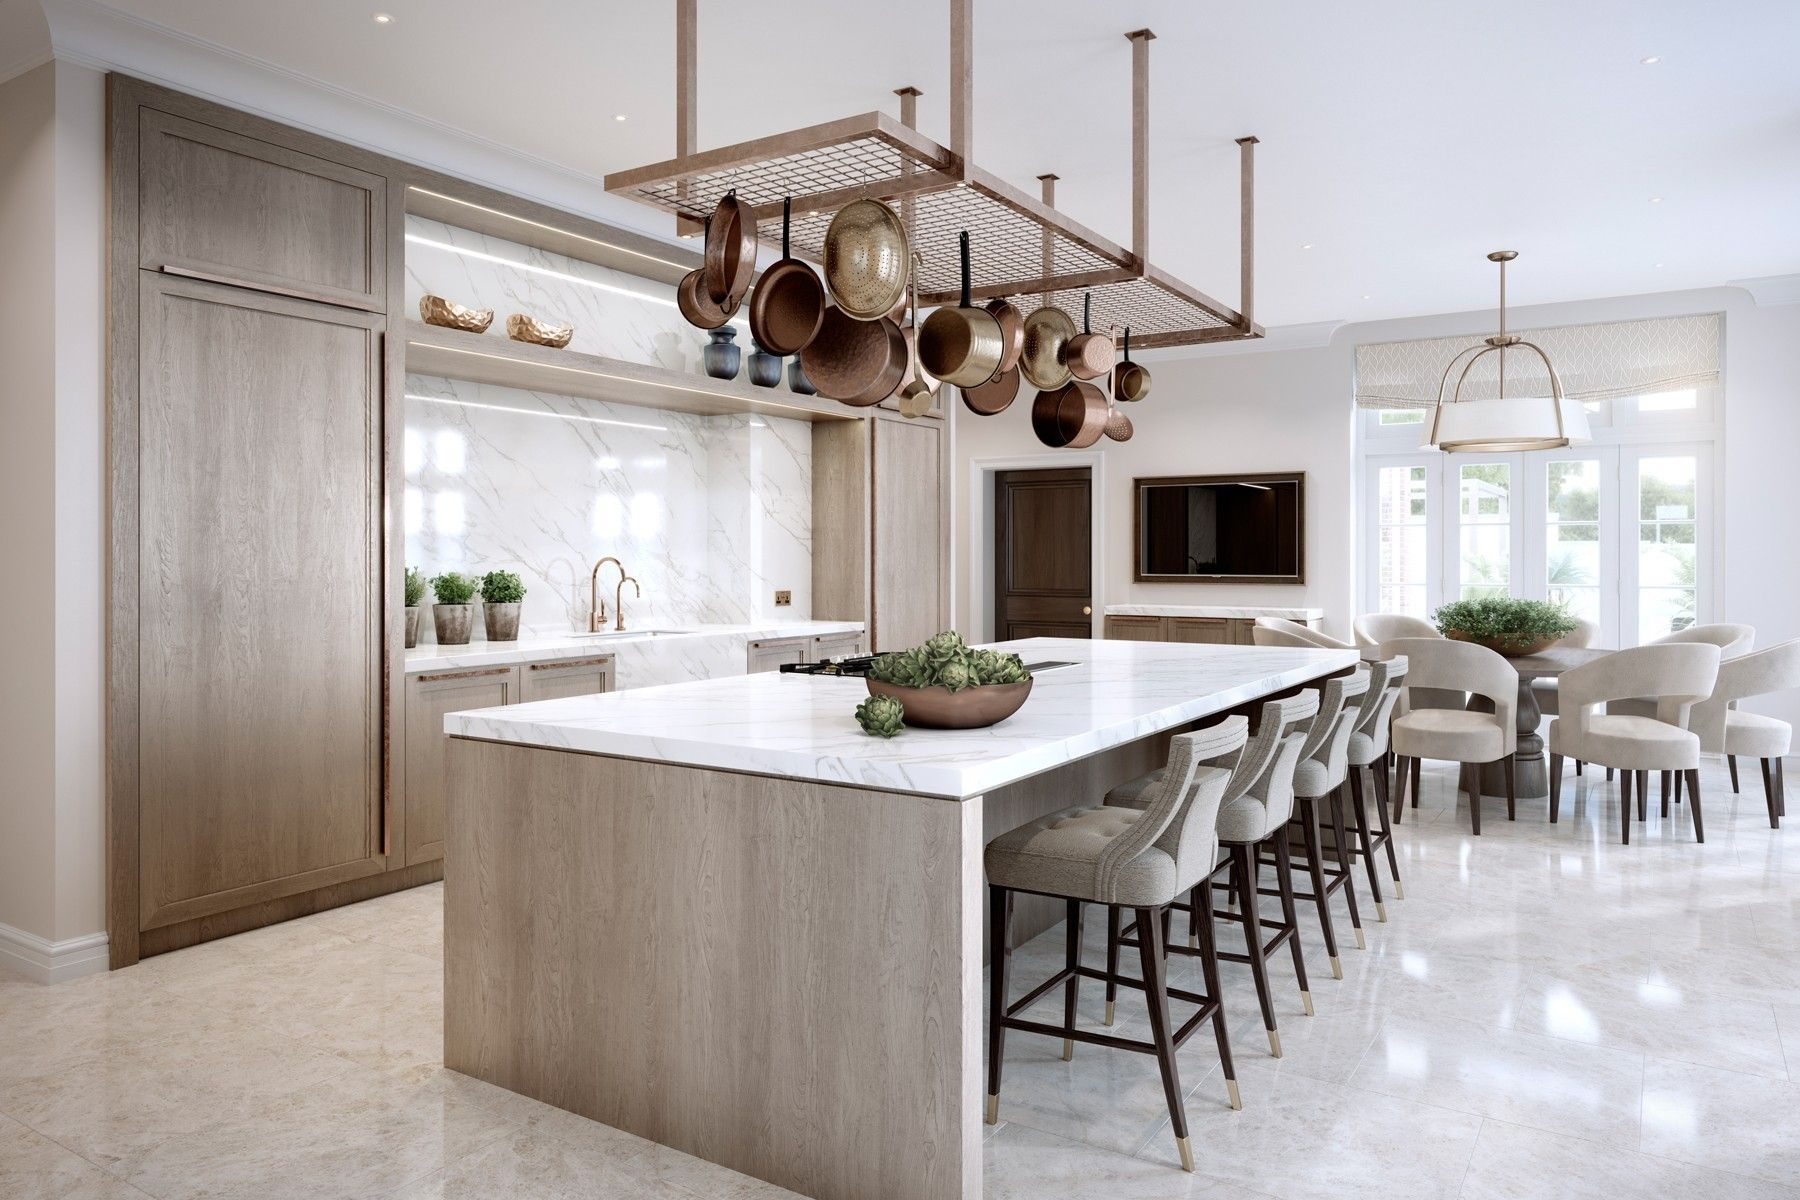 kitchen seating ideas surrey family home, luxury interior design